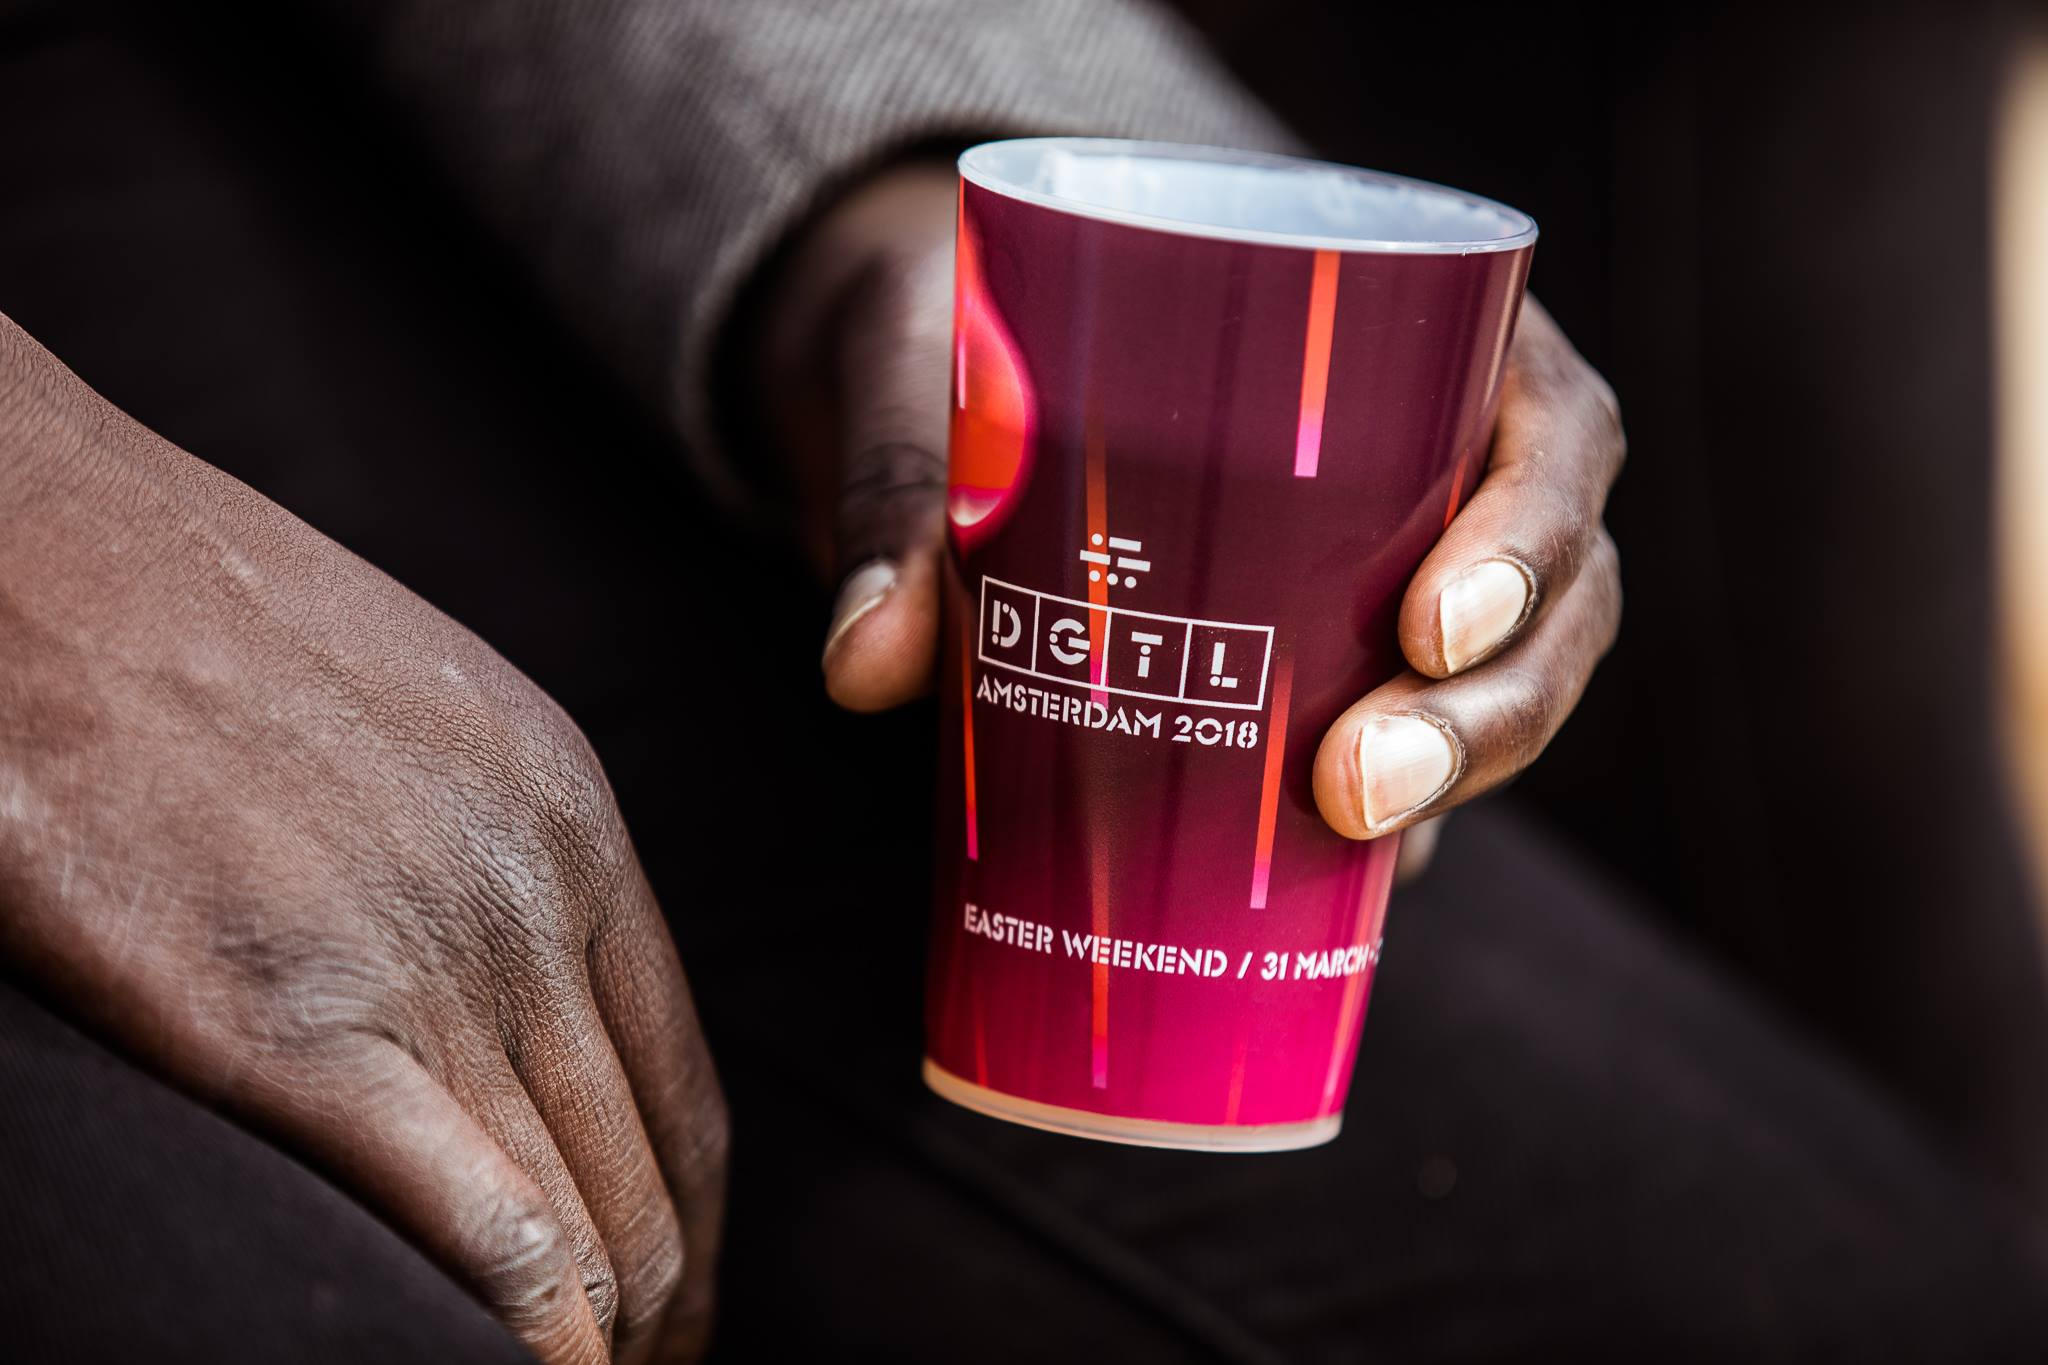 Festival goers are asked to pay a deposit for their cup, which incentivises them to return it instead of throwing a single-use cup on the ground after use. Photo by DGTL